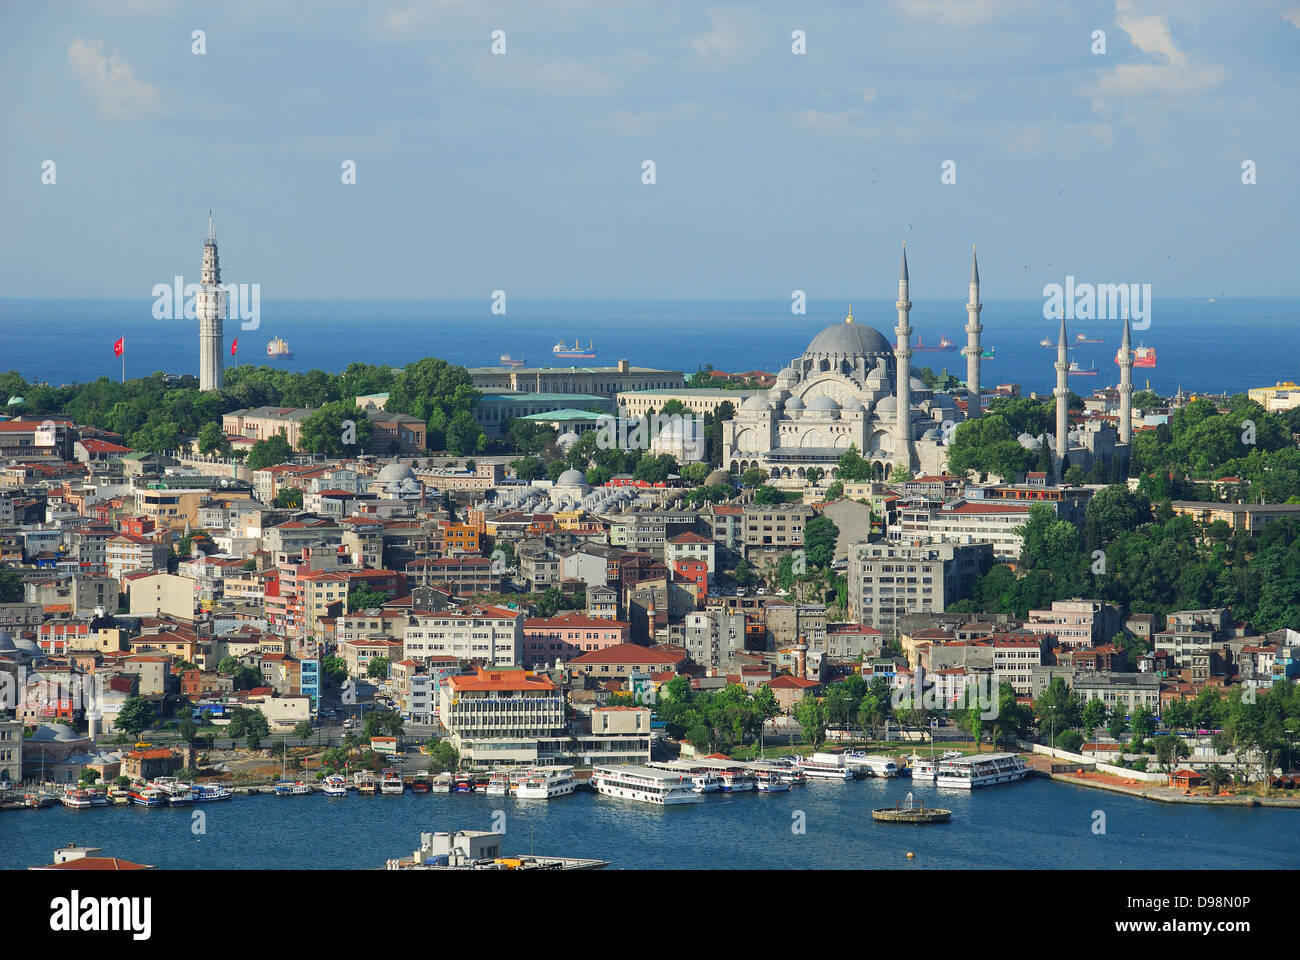 ISTANBUL, TURKEY. A view over the Golden Horn to the Beyazit fire tower (left) and the Suleymaniye Mosque (right). - Stock Image